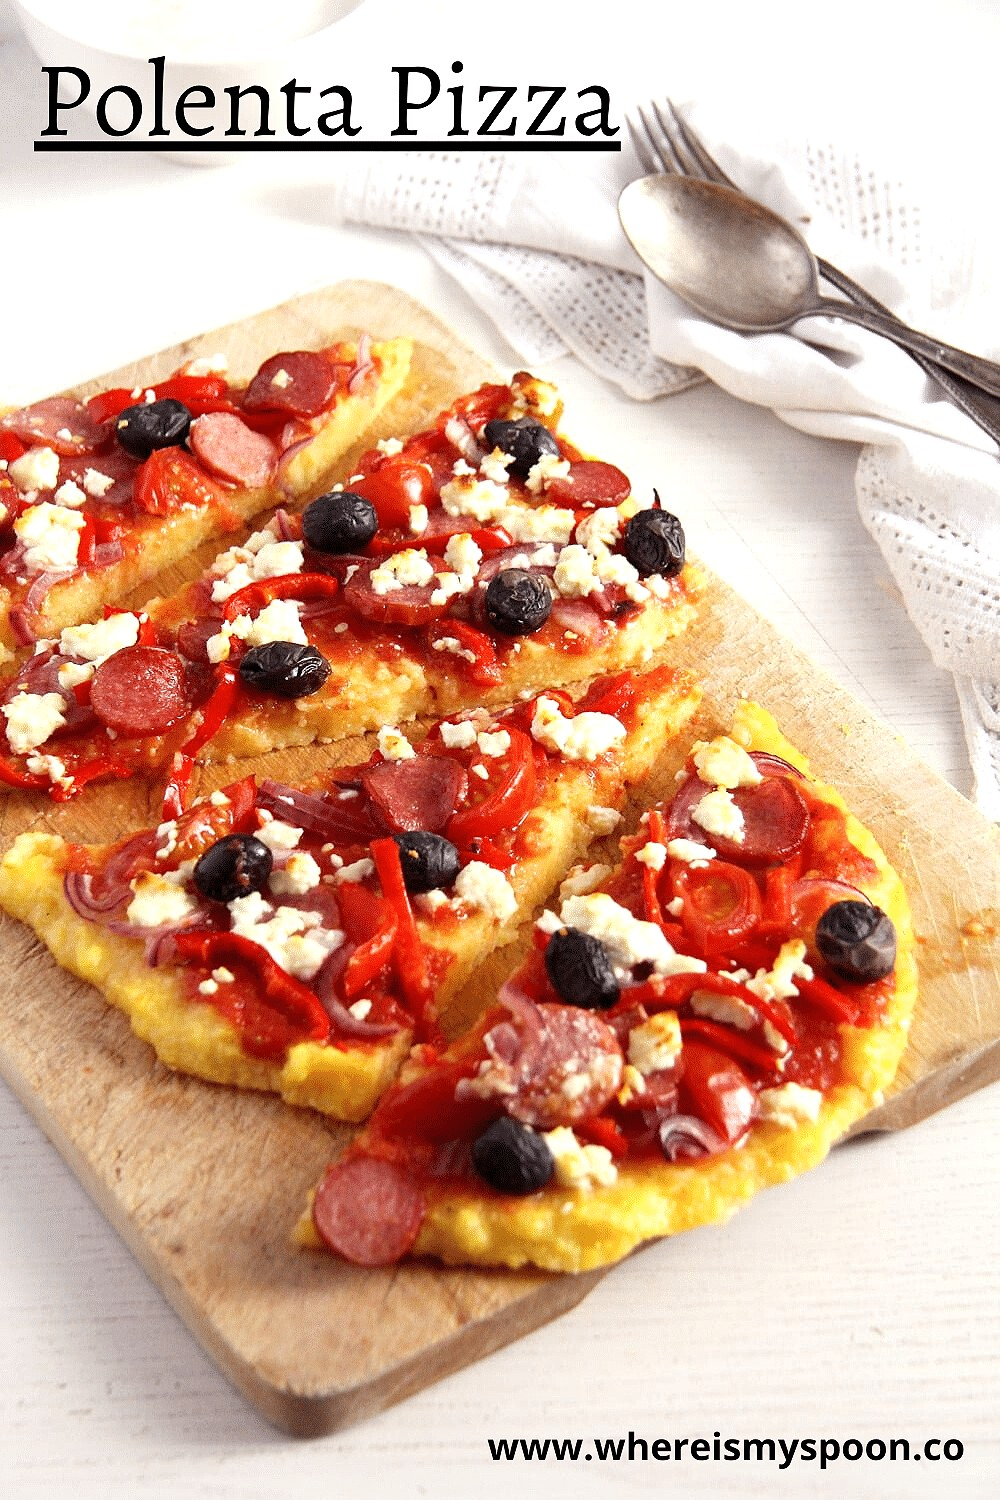 polenta pizza, Polenta Pizza (with Various Toppings)